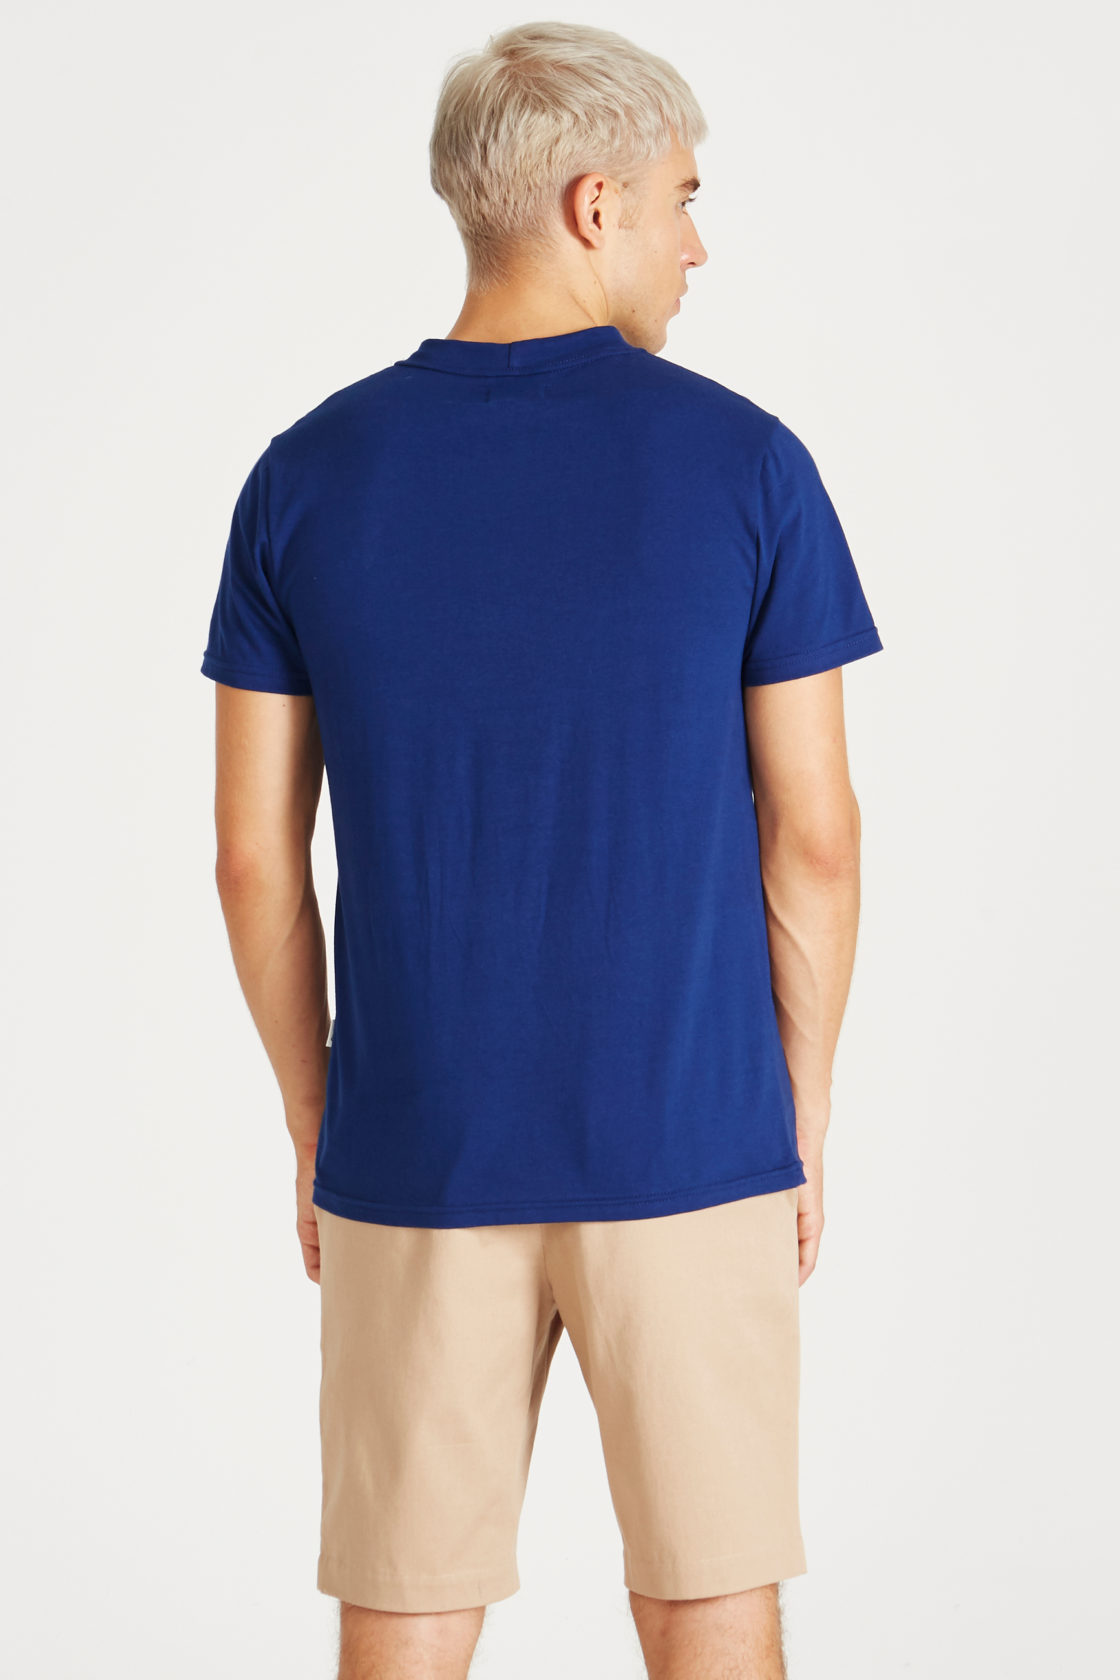 Givn T Shirt Colby Navy 2